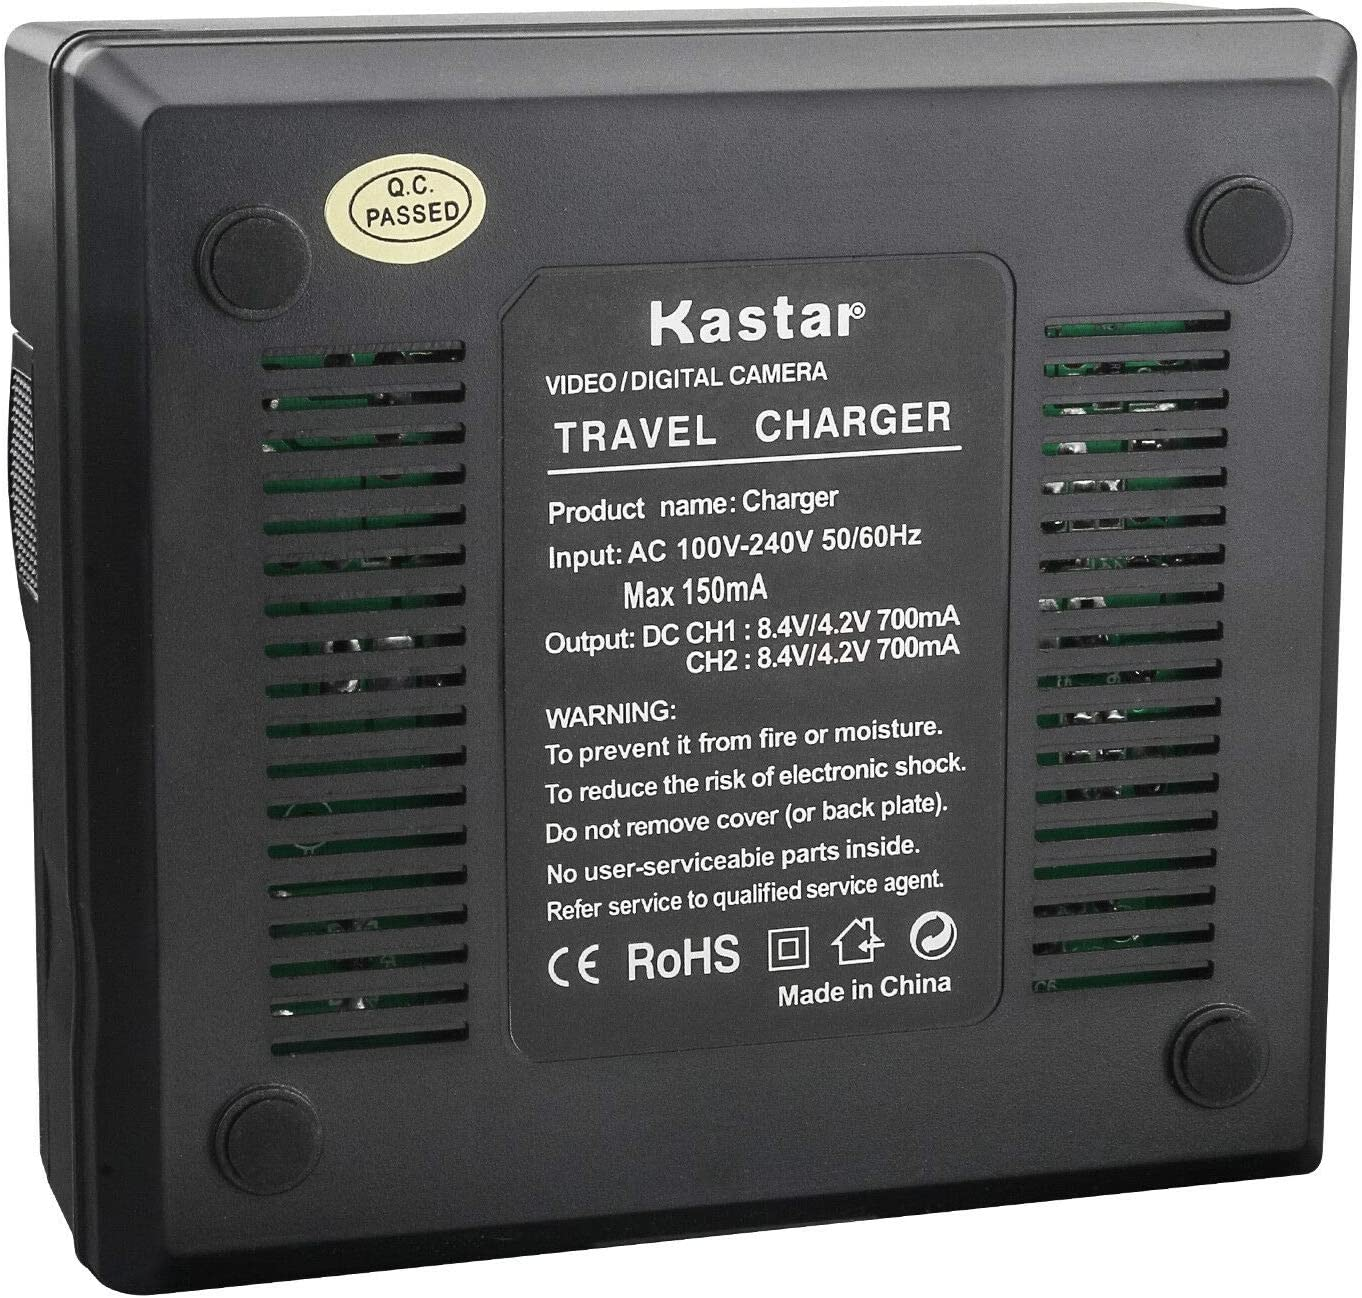 Kastar AC Rapid Dual Charger Compatible with Canon BP-970 BP-970G BP-975 BP-945 BP-950 BP-950G BP-955 ES50 ES55 ES60 ES65 ES75 ES300V ES410V UC-V300 UC-X1 UC-X1Hi V50Hi V60Hi V65Hi XM1 XM2 XV1 XV2